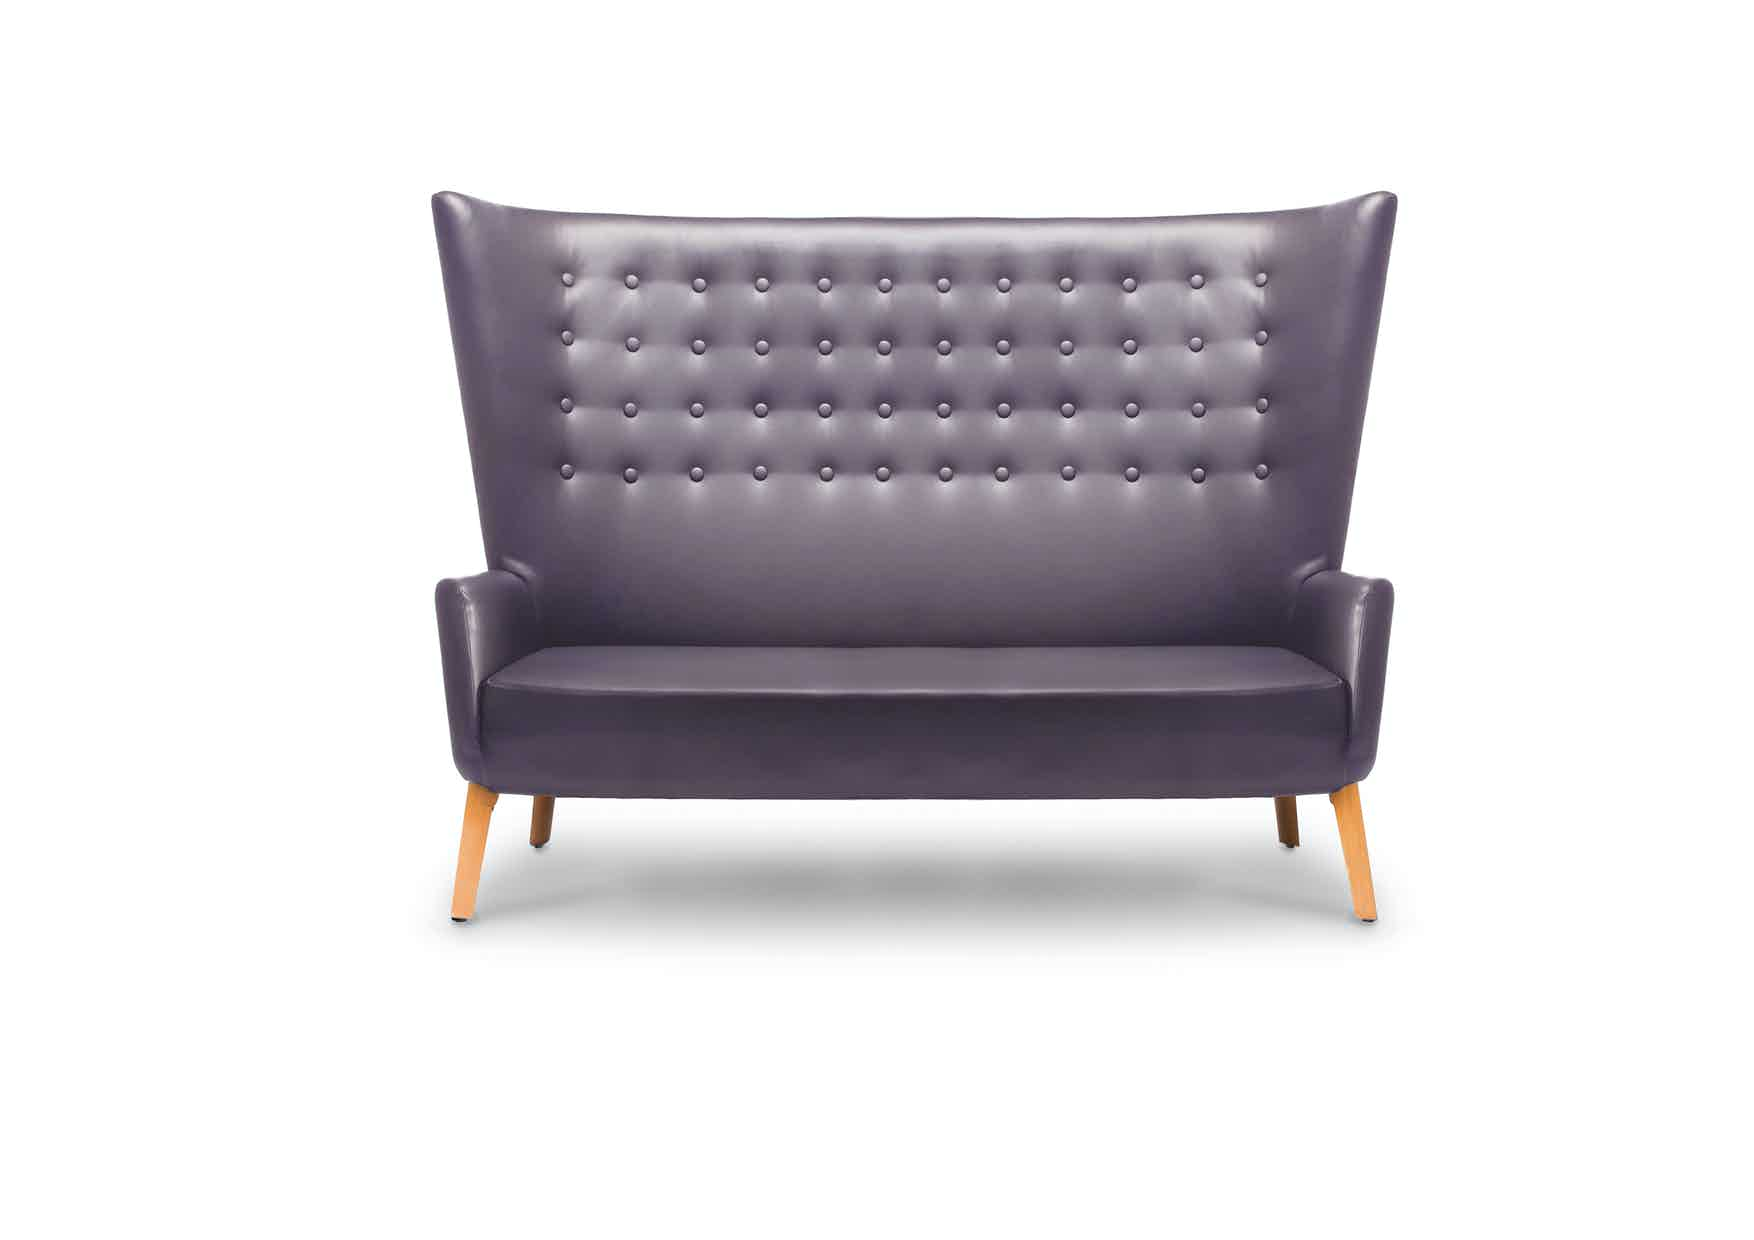 Deadgood-loved-up-sofa-big-loved-up-purple-haute-living